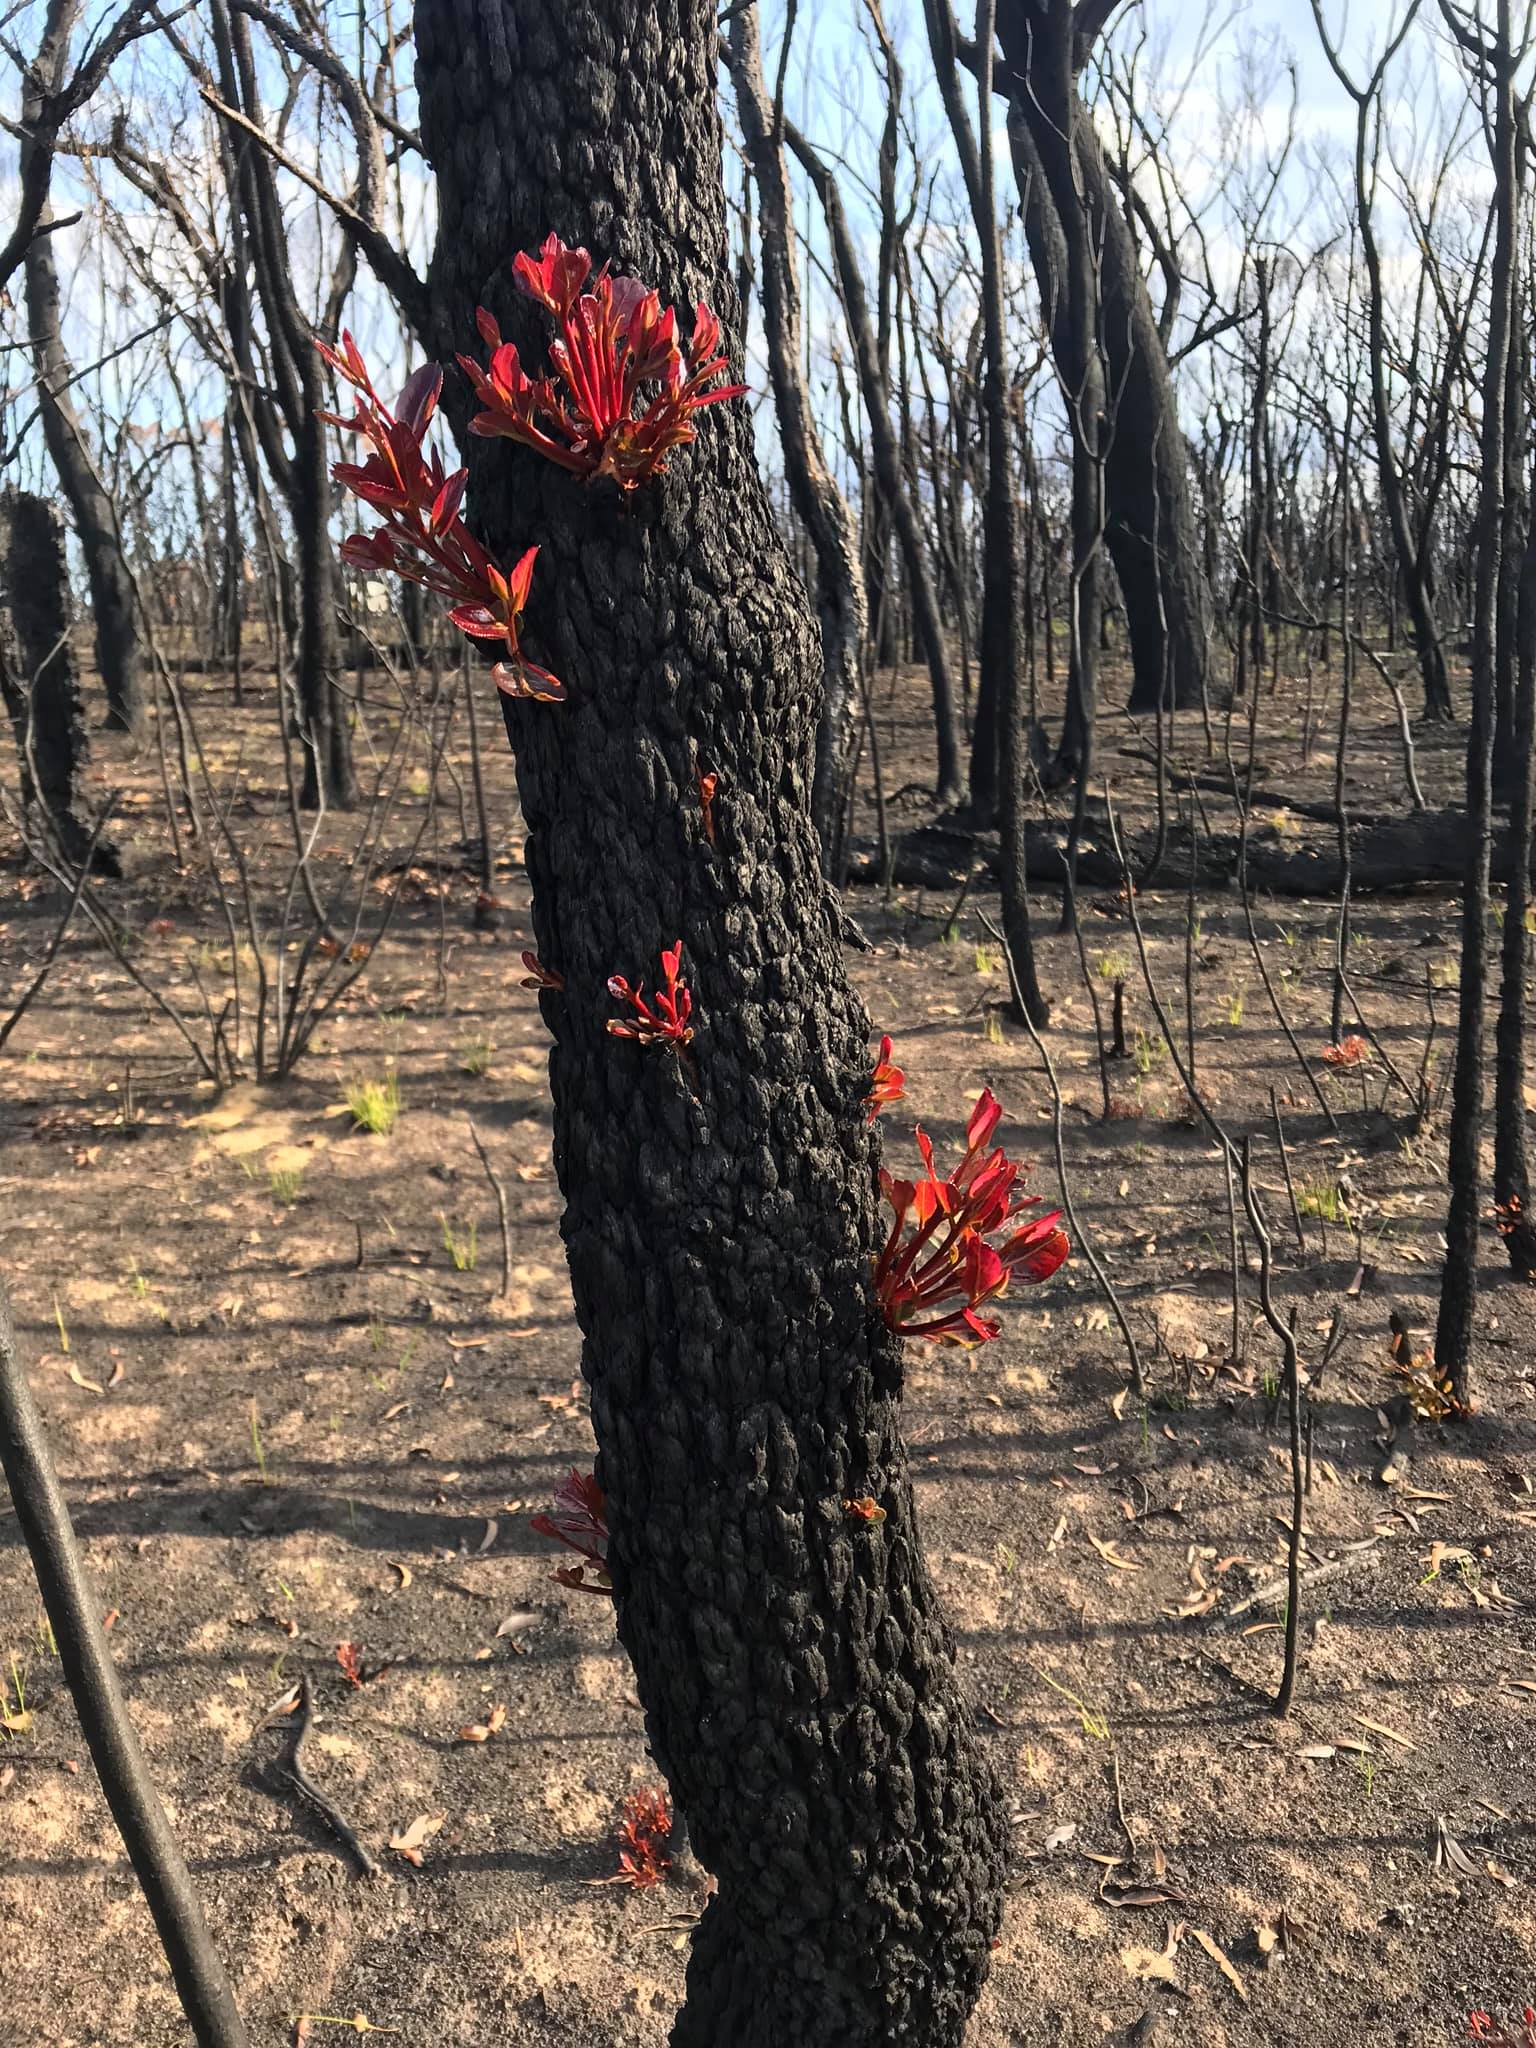 bright red shoots of regrowth starting to peep out of a charred and black tree trunk